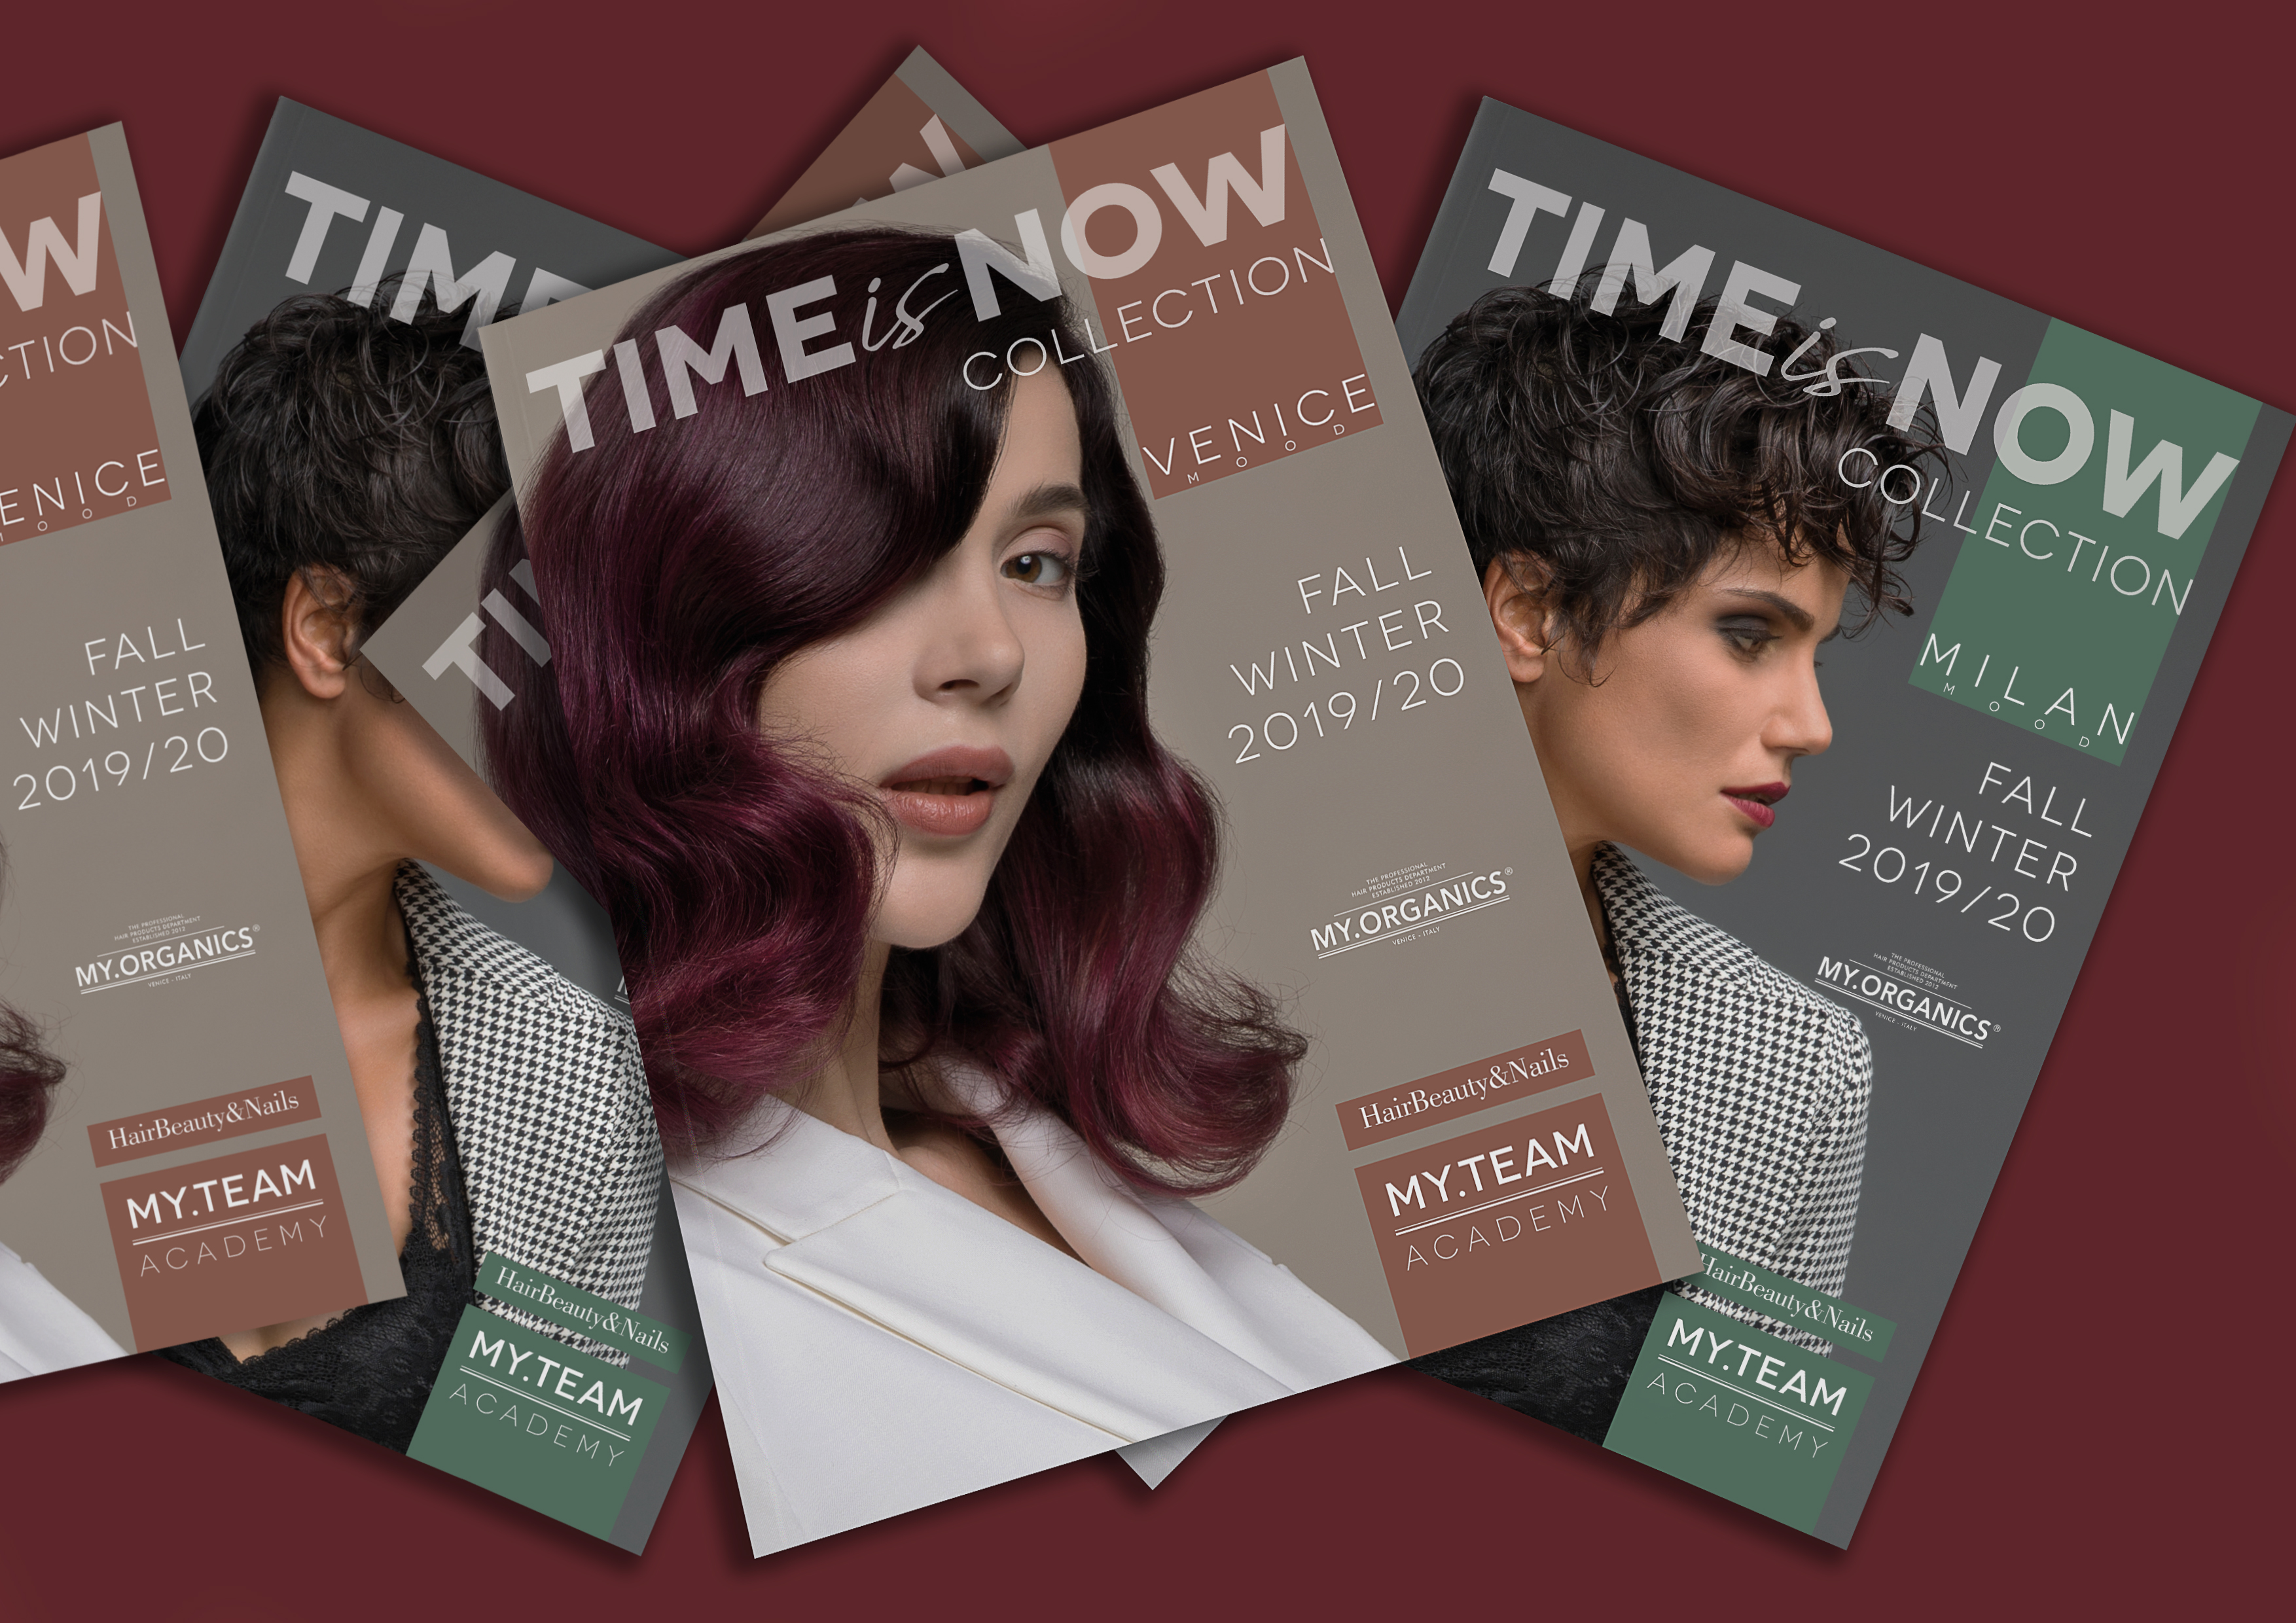 SCARICA IL BOOK TIMEisNOW  COLLECTION F/W 2019.20